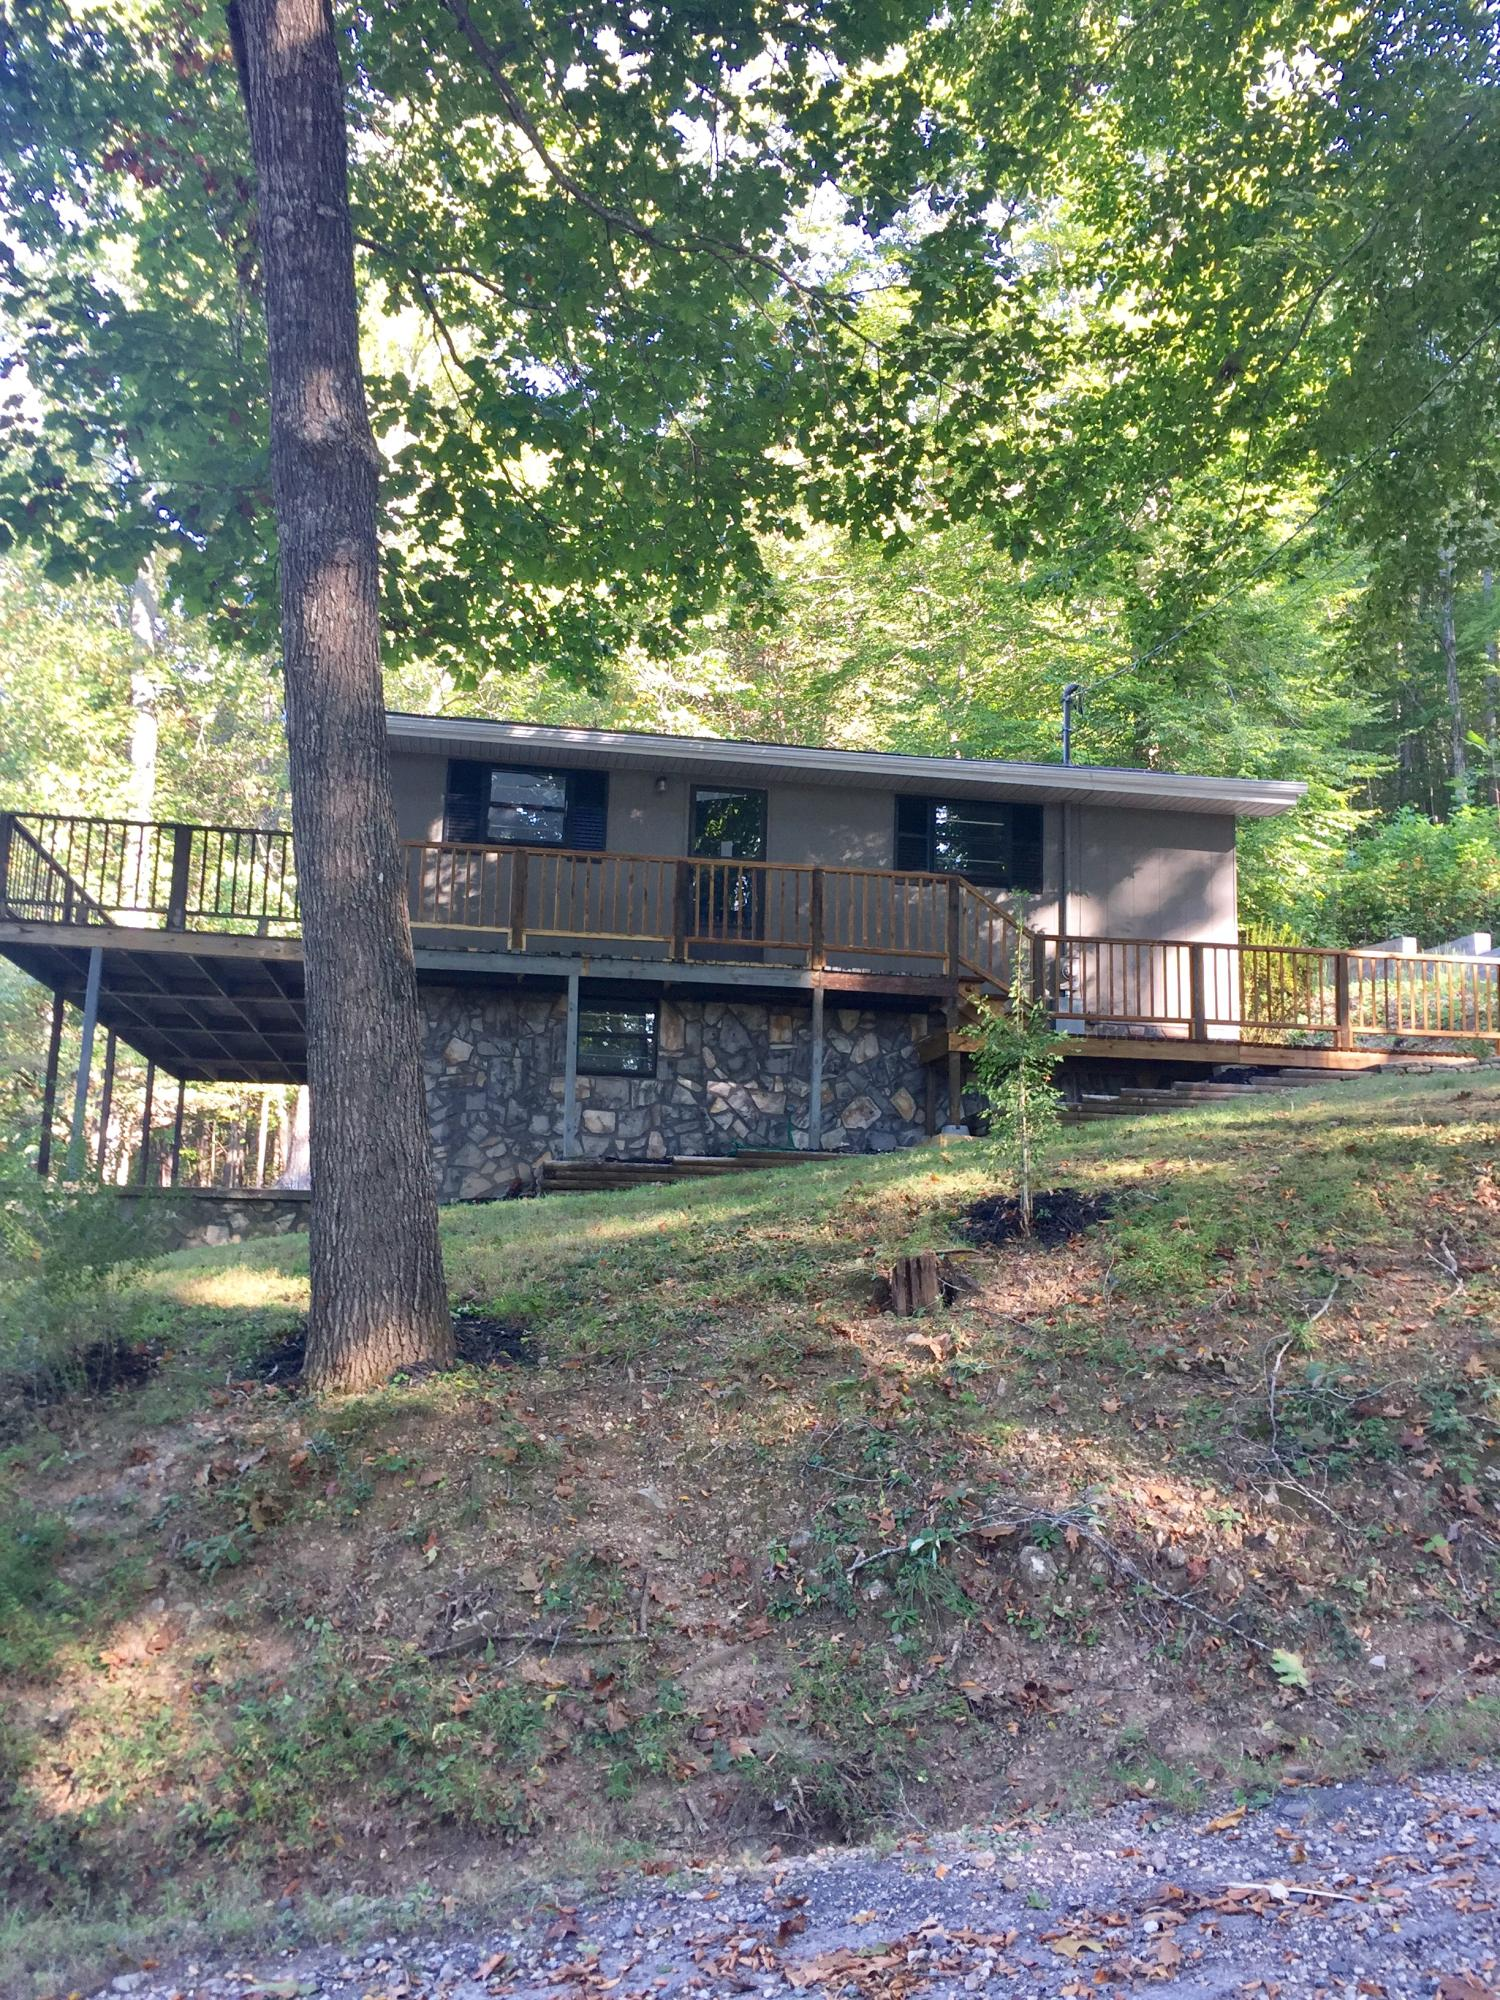 326 Jess Perry Rd, Maynardville, Tennessee 37807, 4 Bedrooms Bedrooms, ,1 BathroomBathrooms,Single Family,For Sale,Jess Perry,1018954